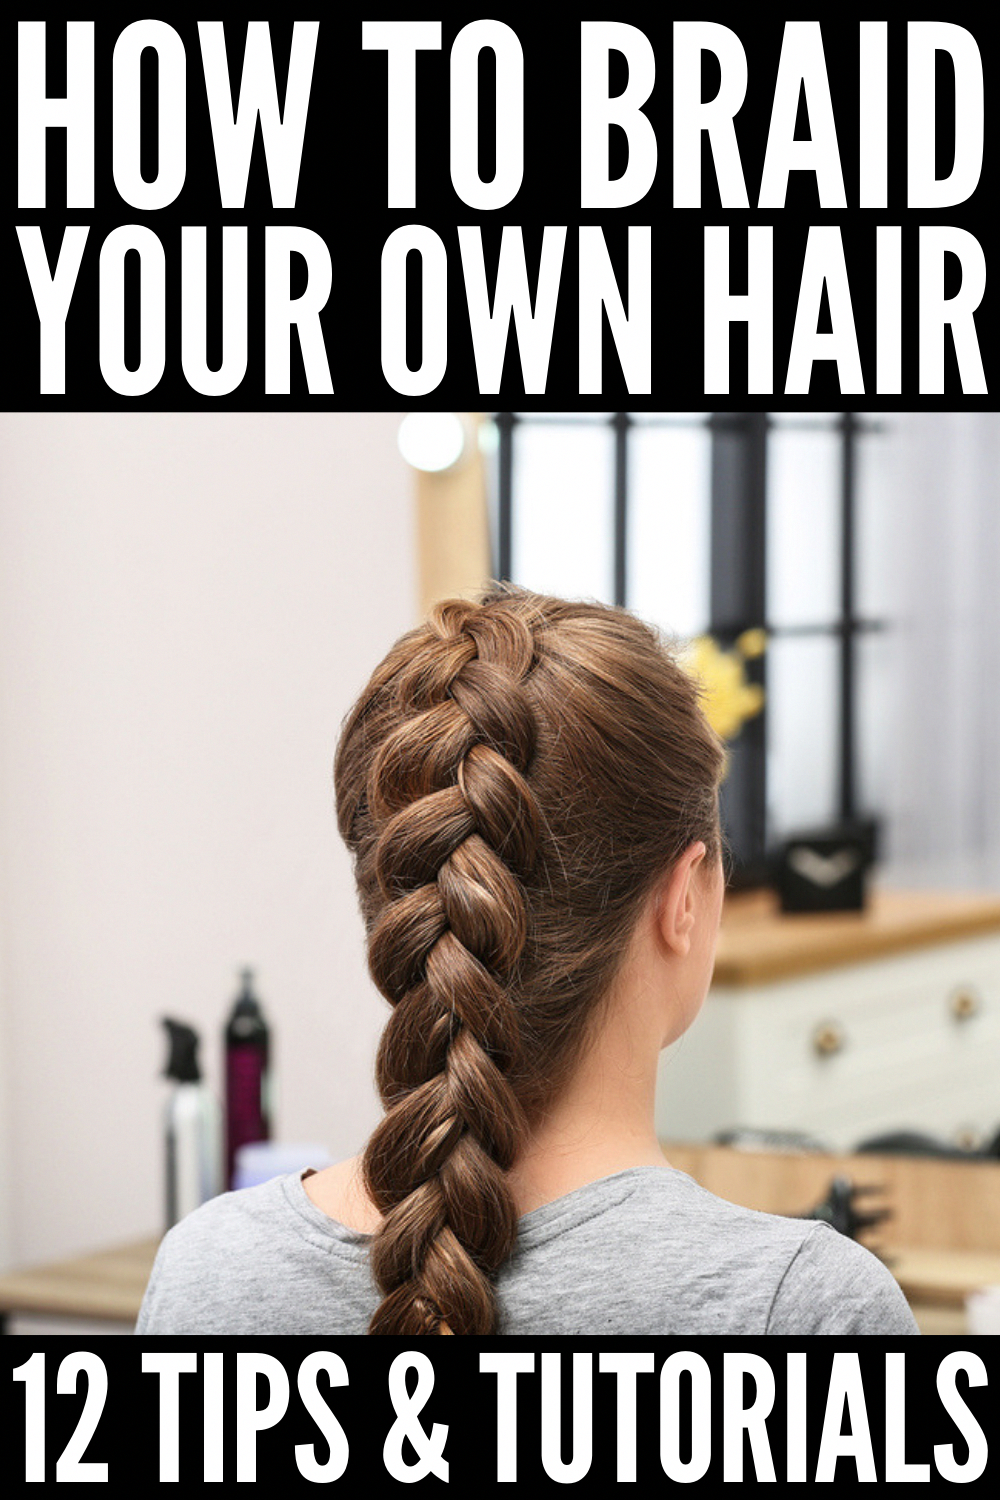 How to Braid Your Own Hair: 5 Step-by-Step Tutorials for Beginners -   9 hairstyles Long step by step ideas